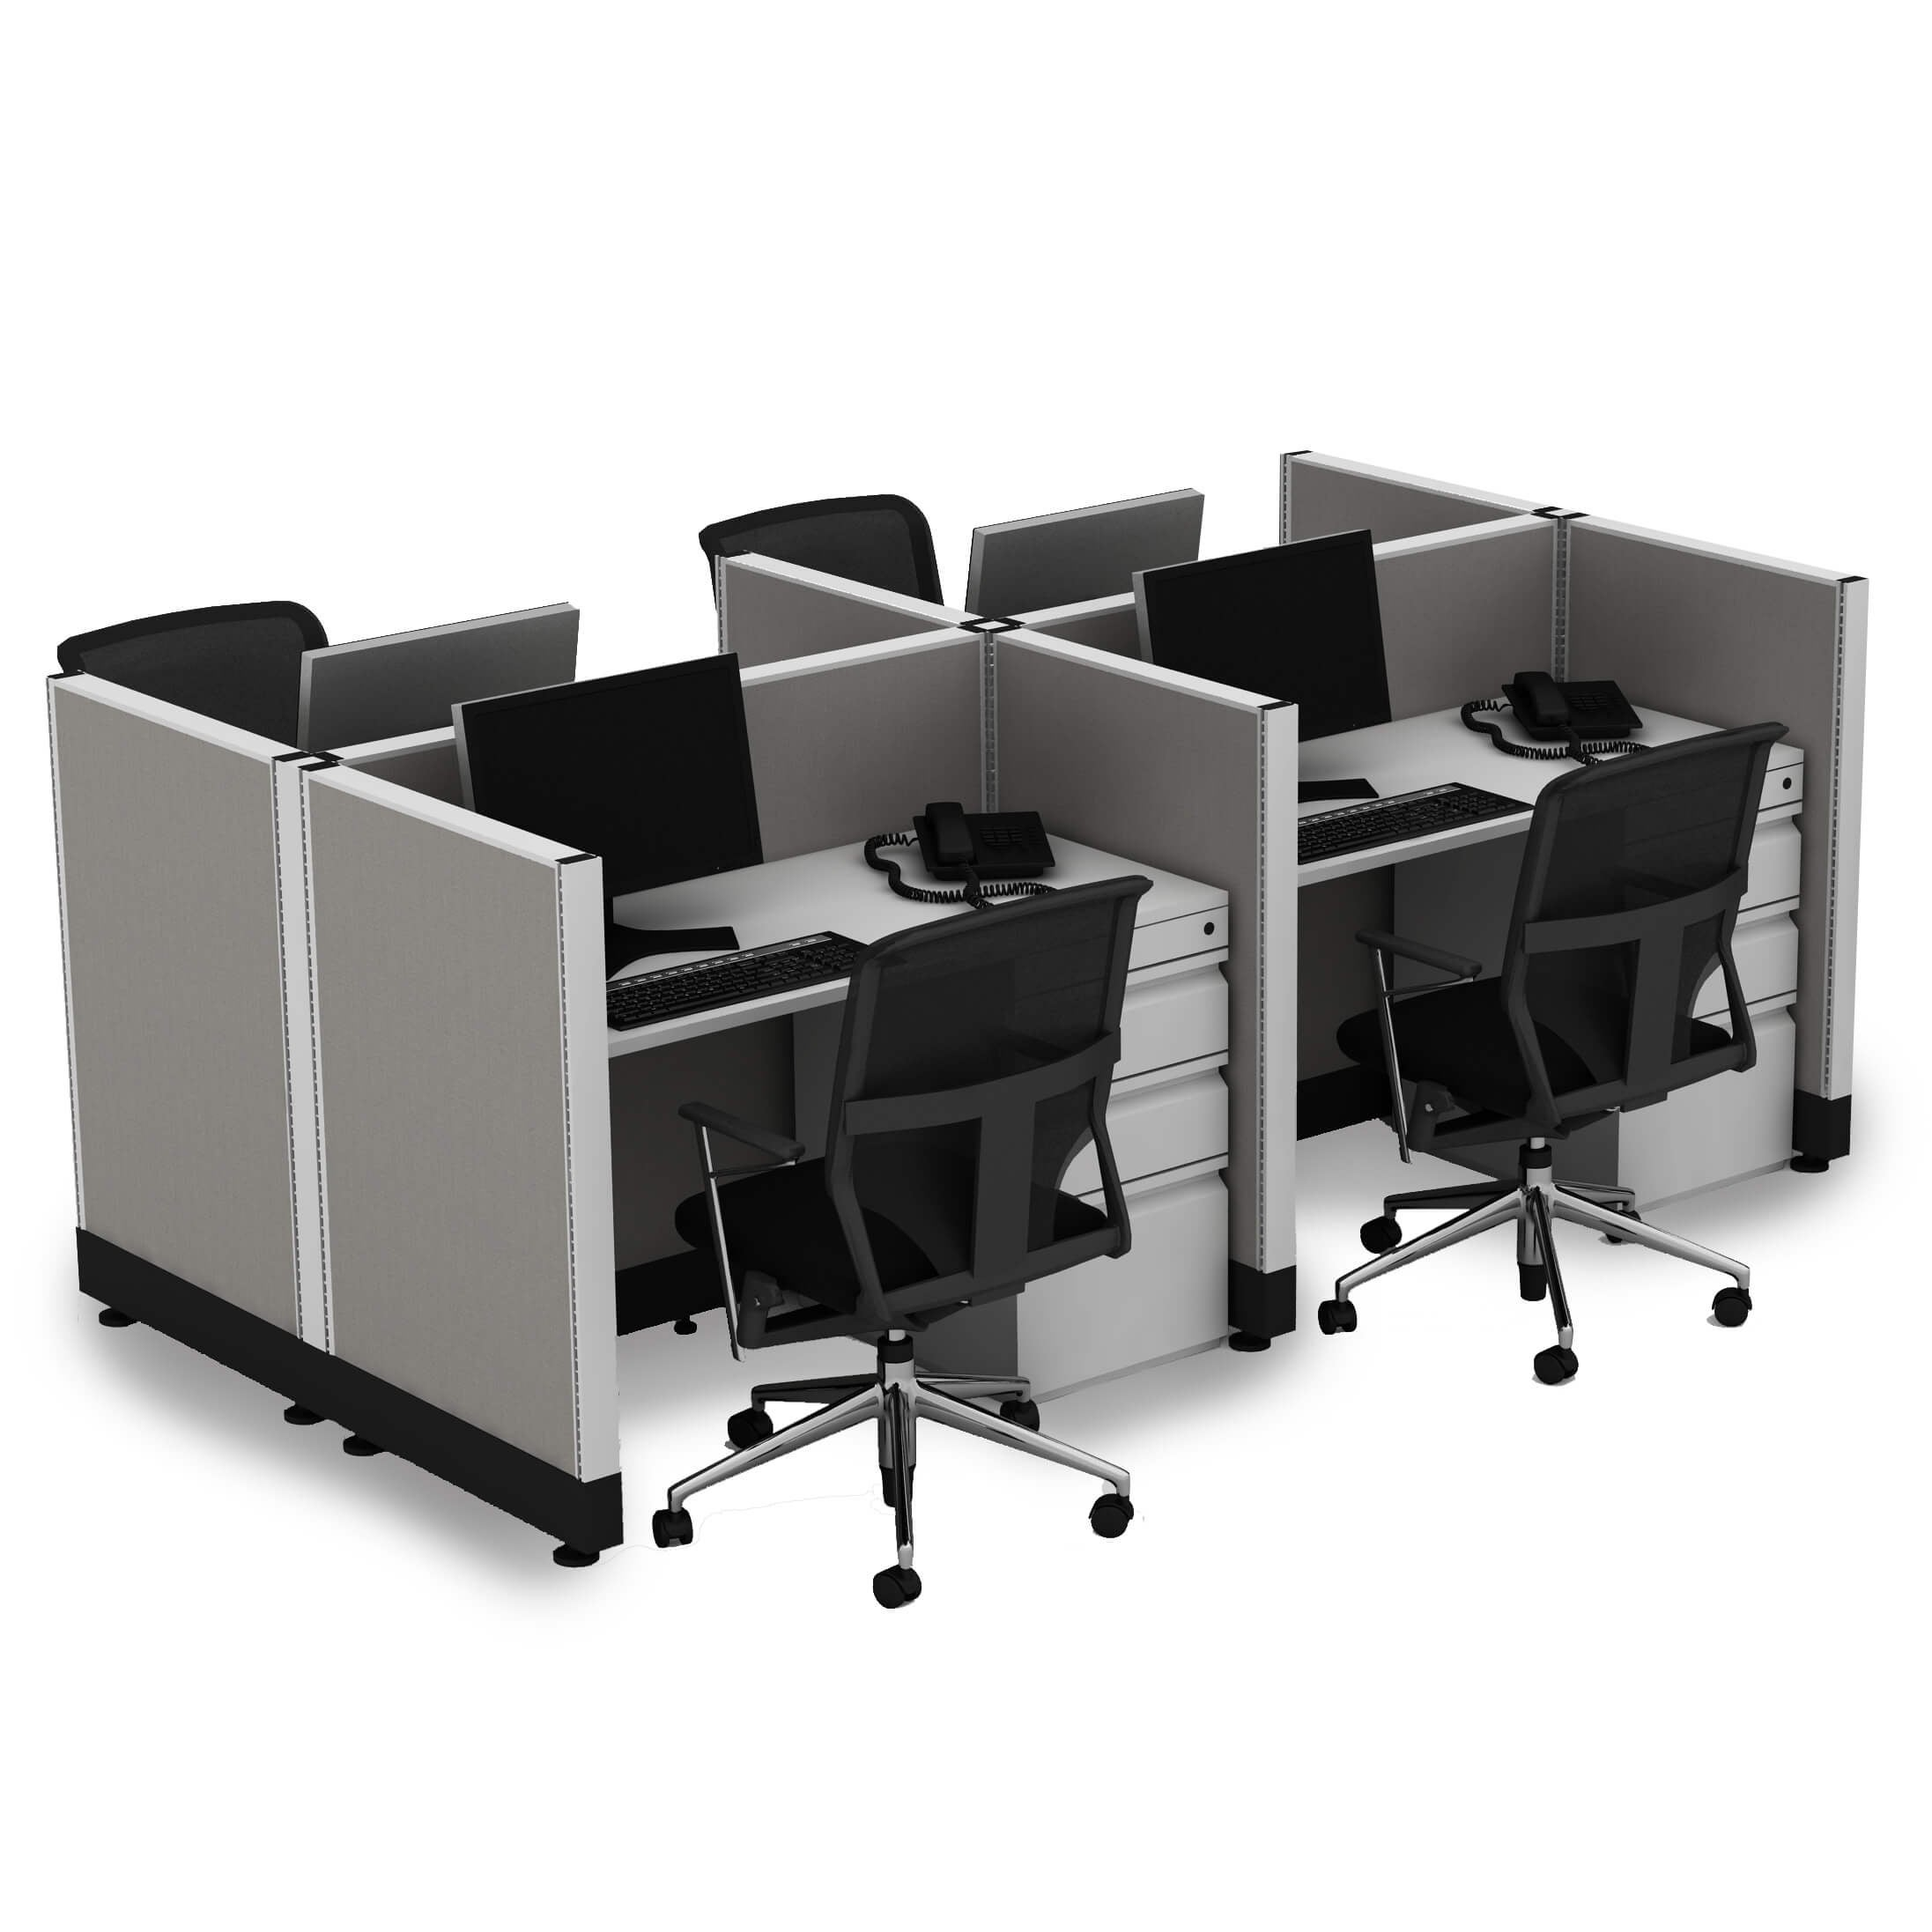 Small Cubicles 39H 4pack Cluster Powered (4x4 - Espresso Desk White Paint - Assembly Required)